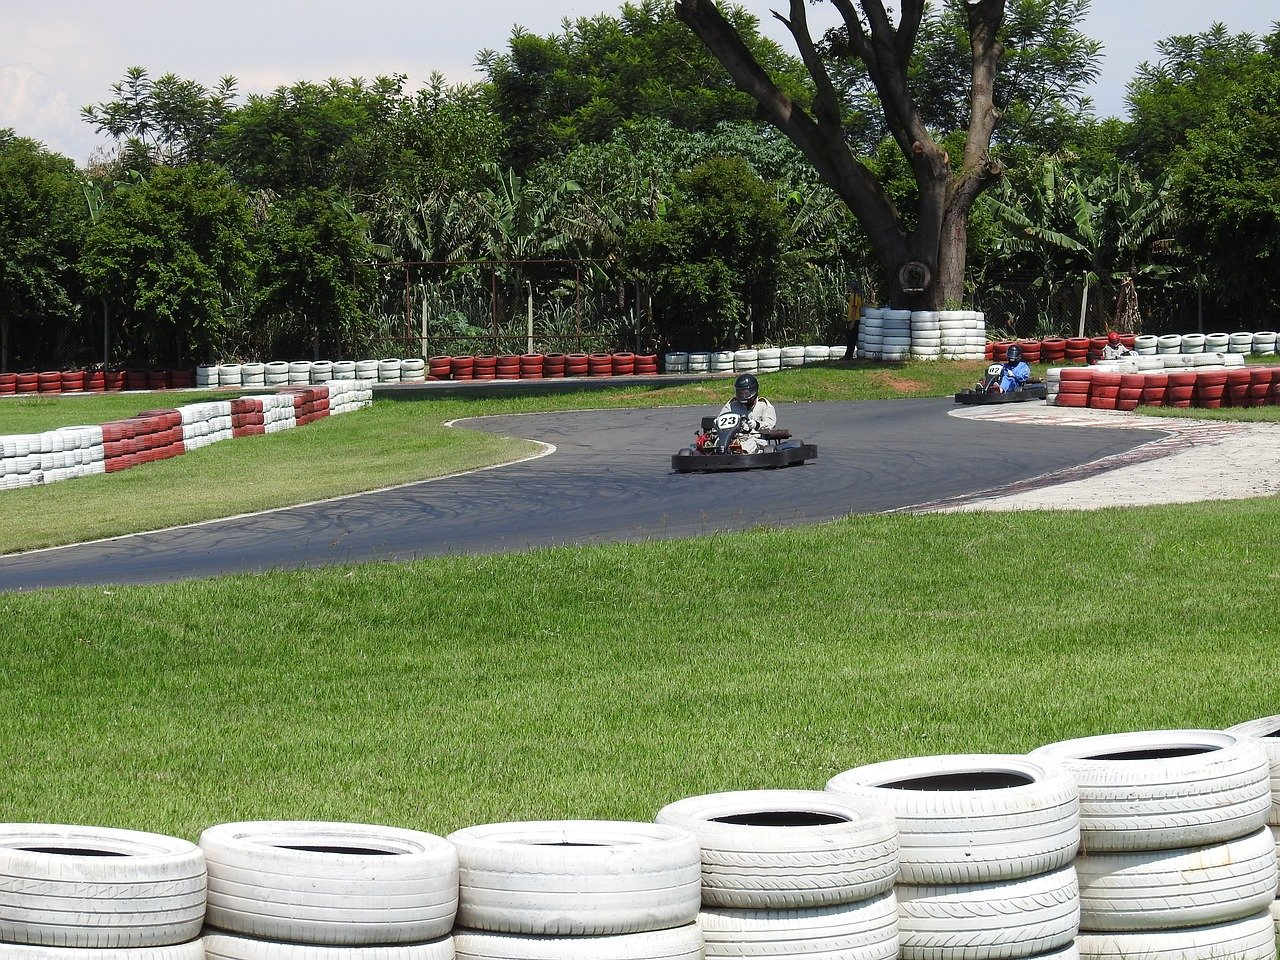 FREE go-kart Stock Photos from PikWizard